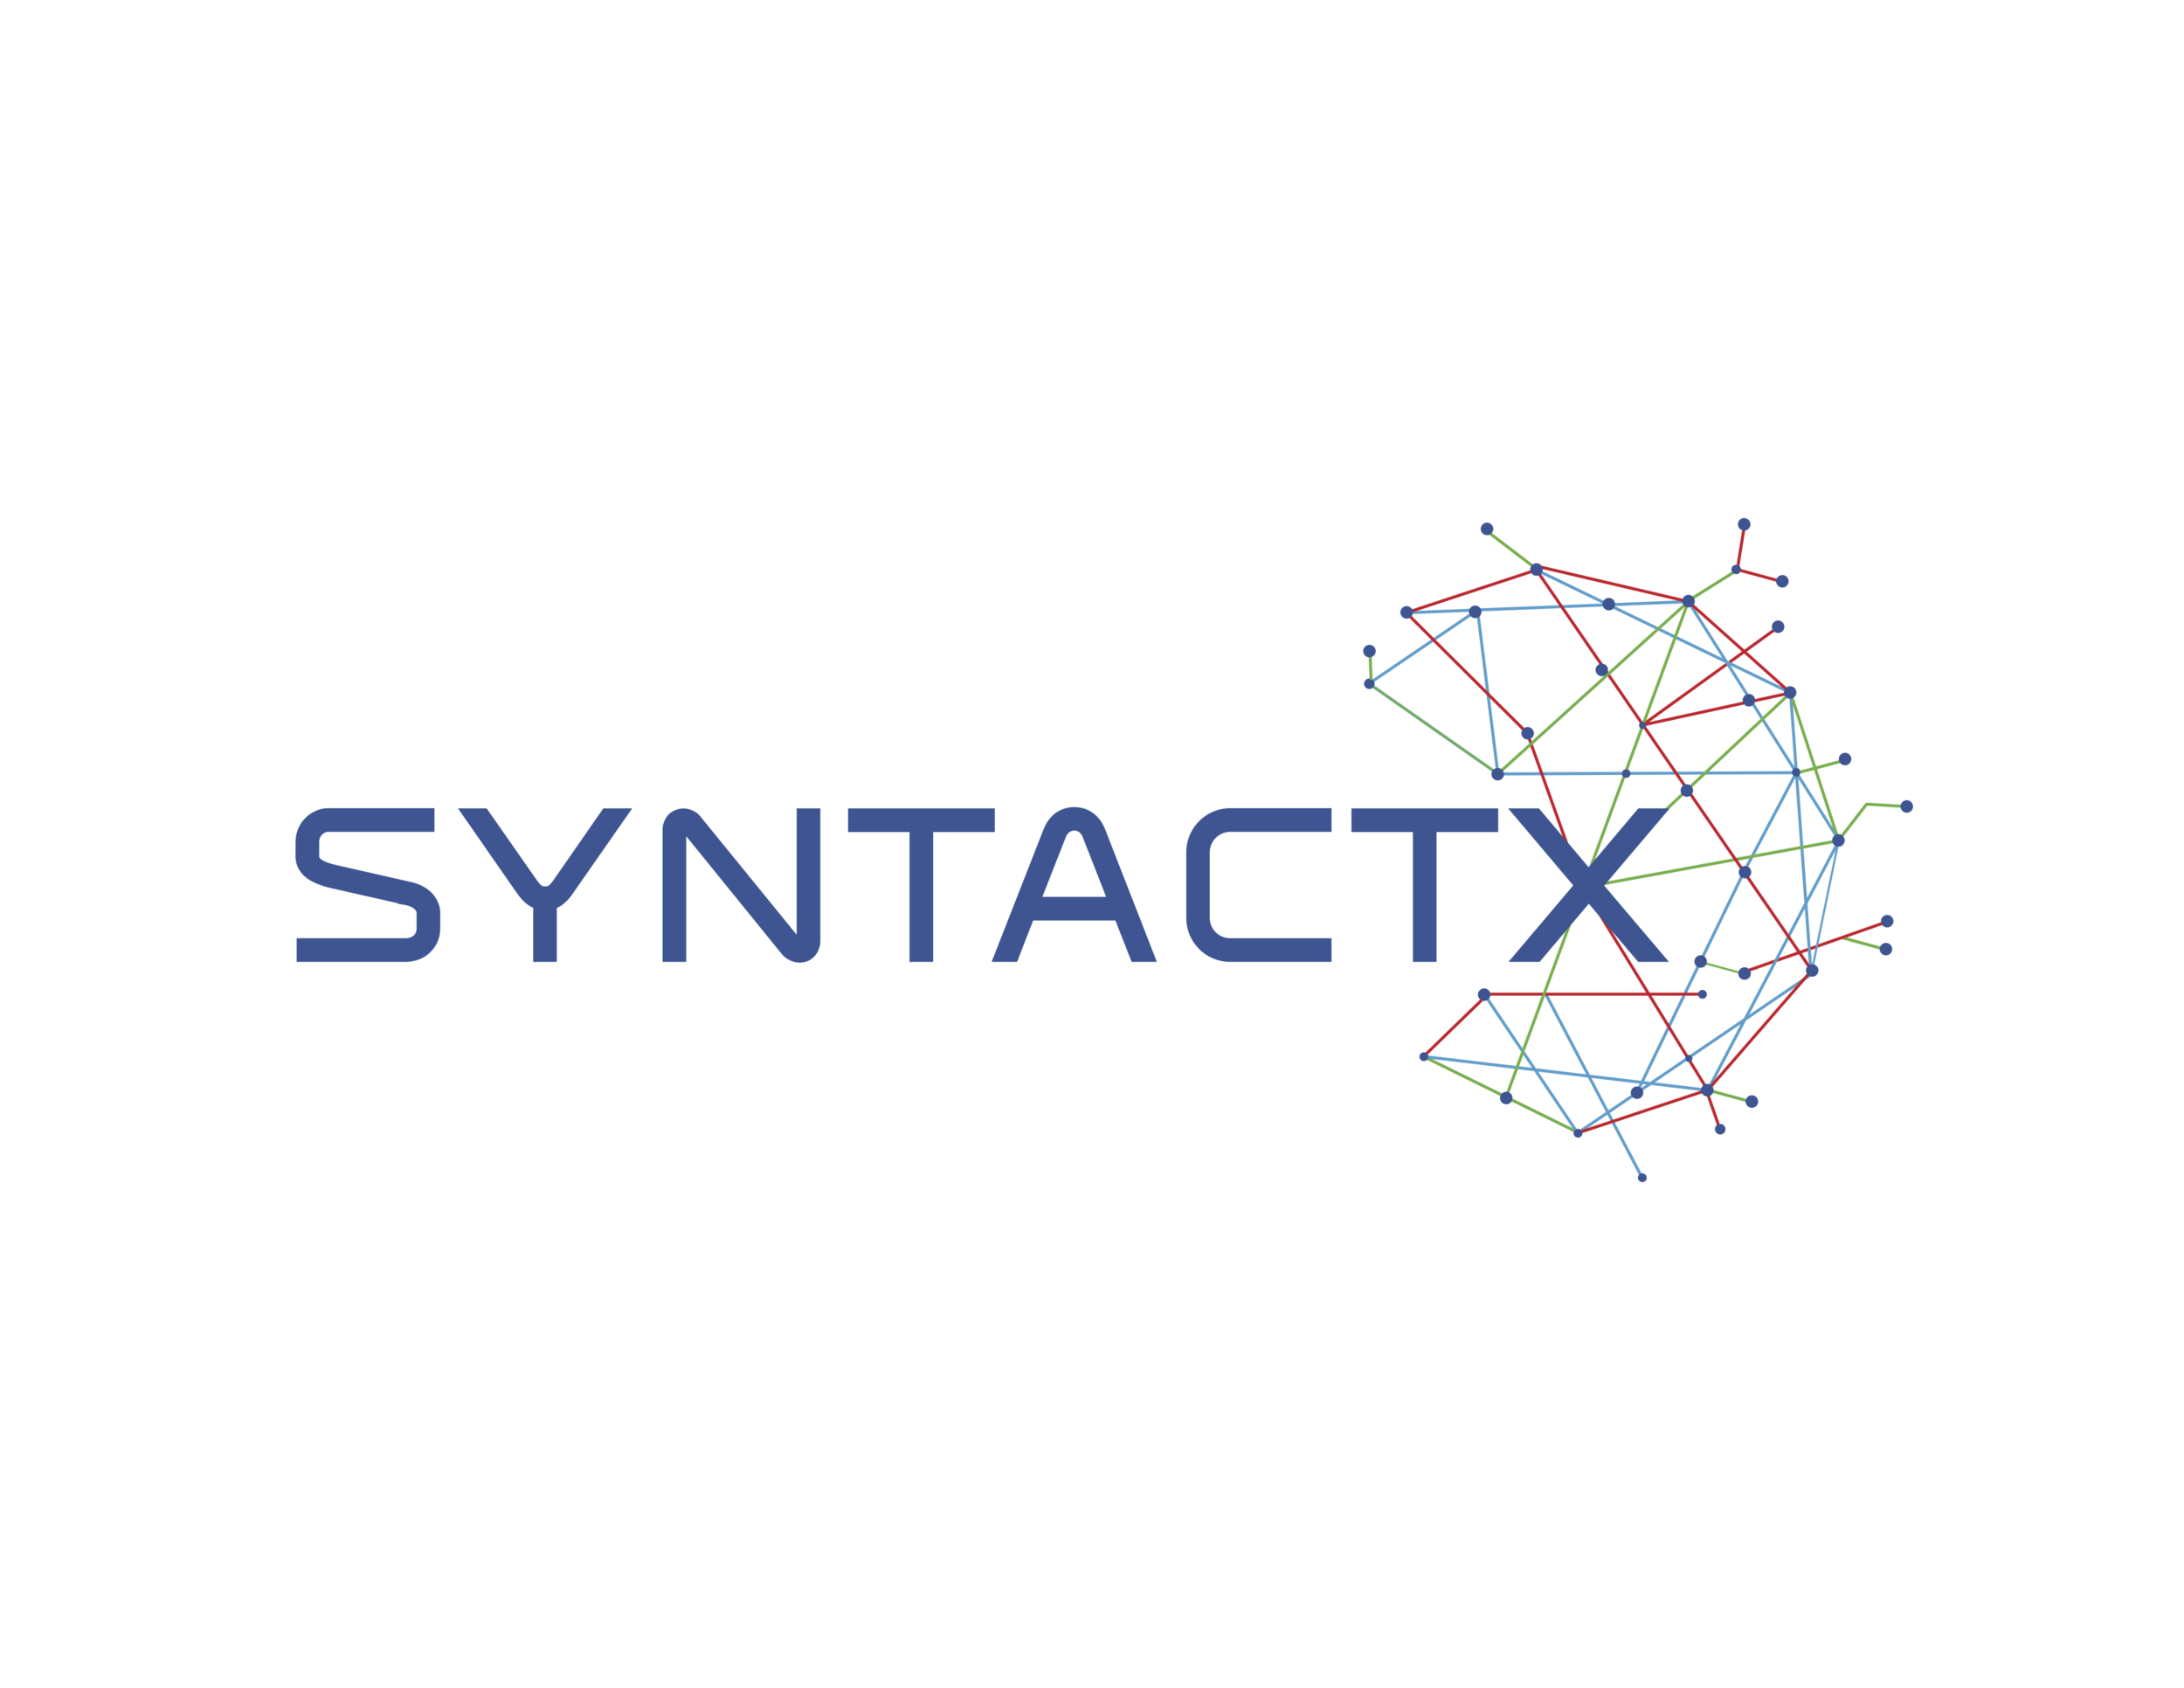 Syntactx_name&symbol_fullcolor.png